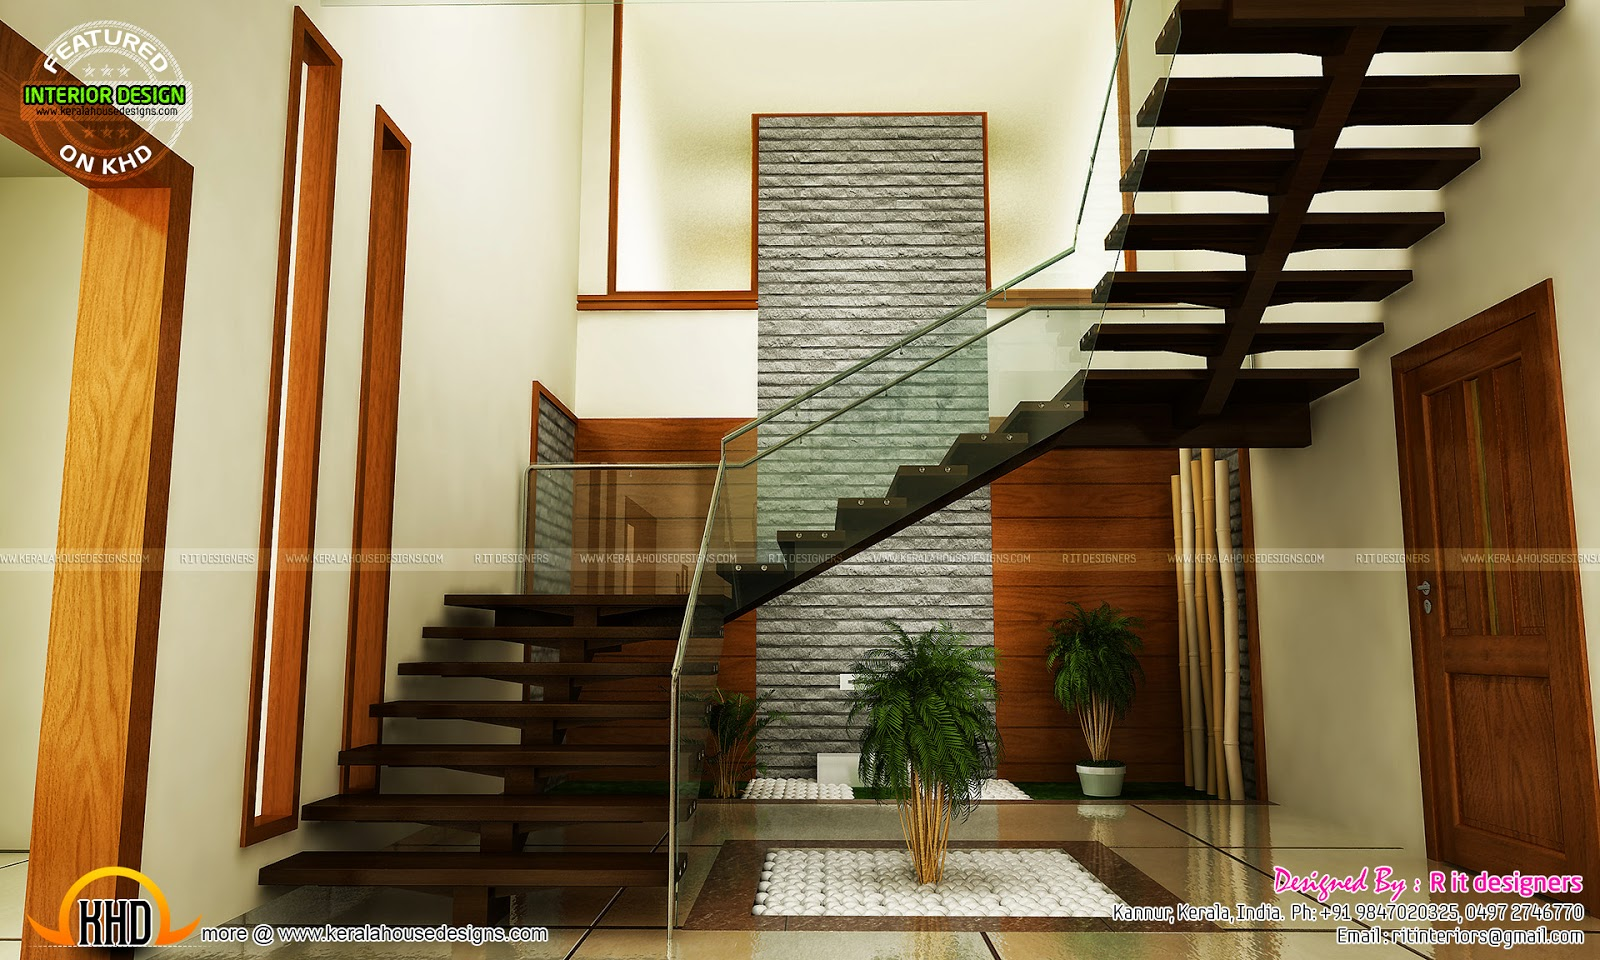 Staircase, bedroom, dining interiors